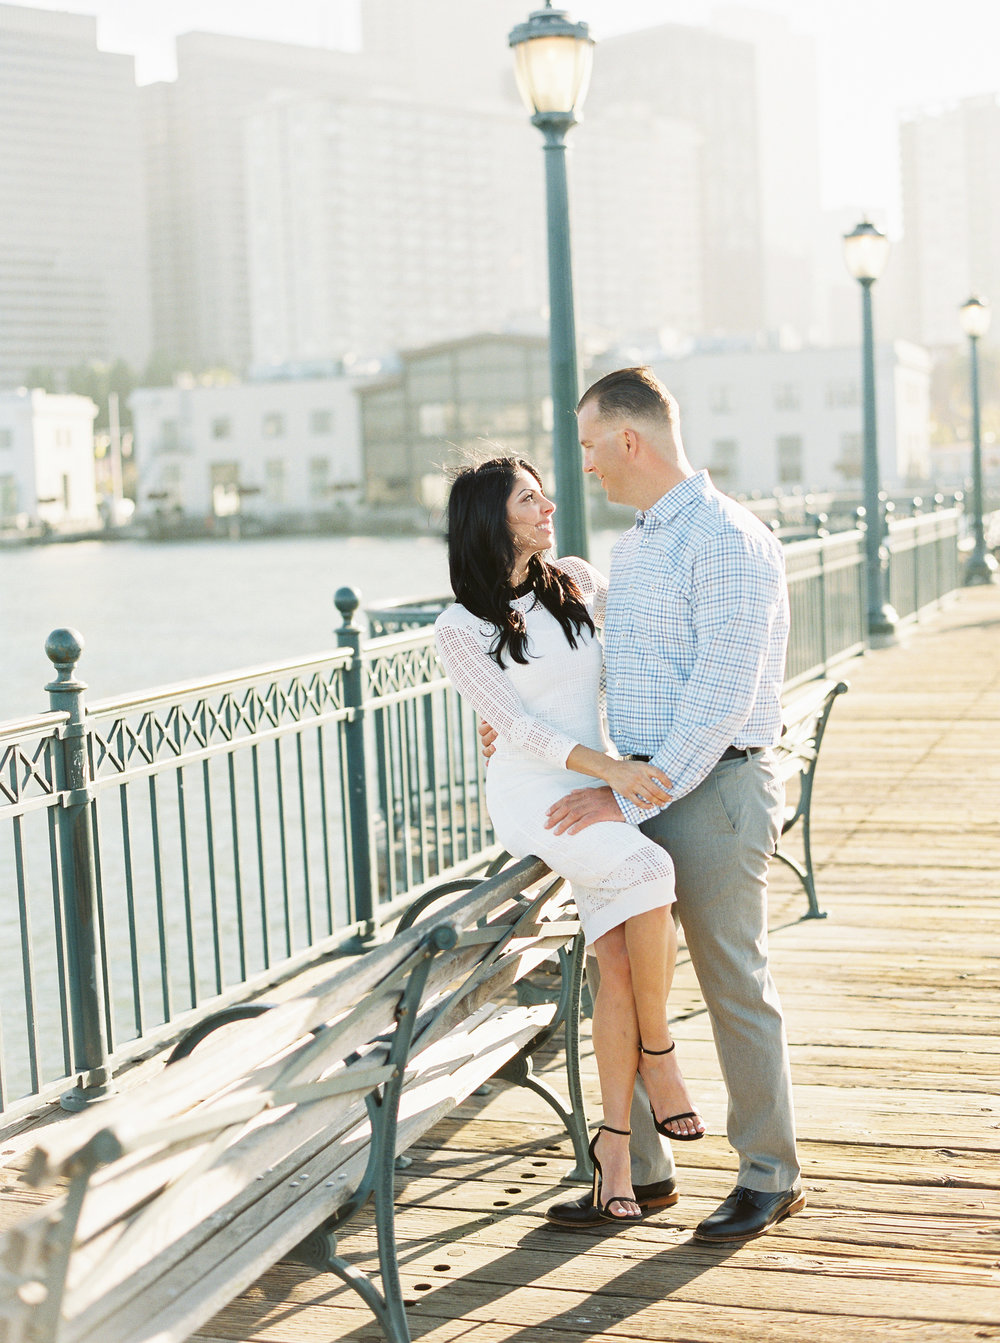 Suto-baths-engagement-photography-91.jpg